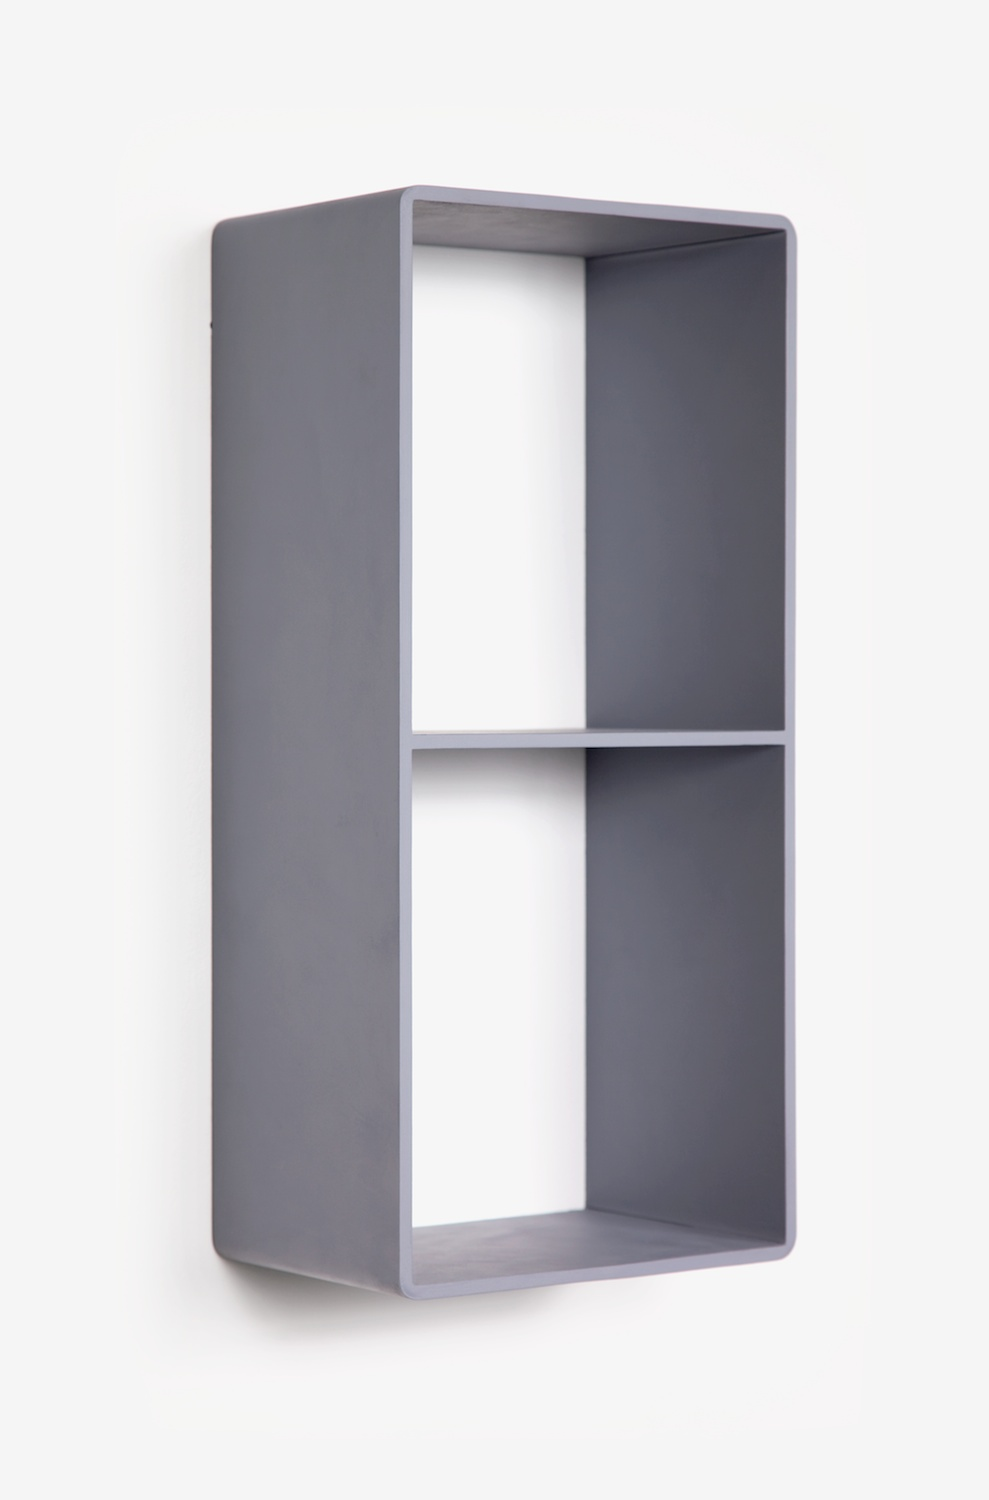 Lisa Williamson  Duplex  2011 Acrylic on steel 18 ½h x 8 ½w x 6d in LW087